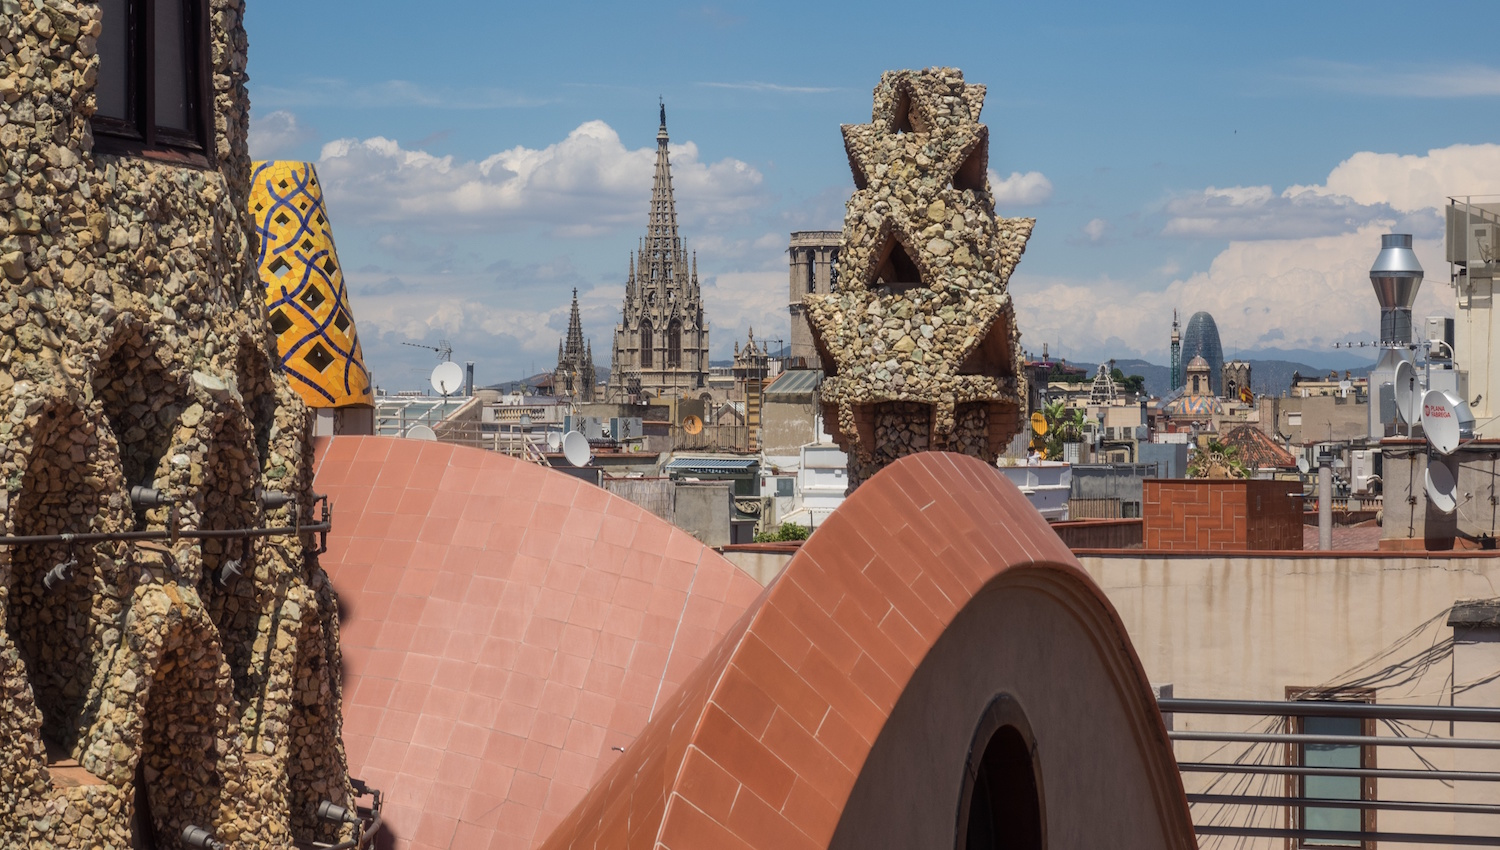 Guell Palace Barcelona - Book Tickets & Tours  GetYourGuide.com